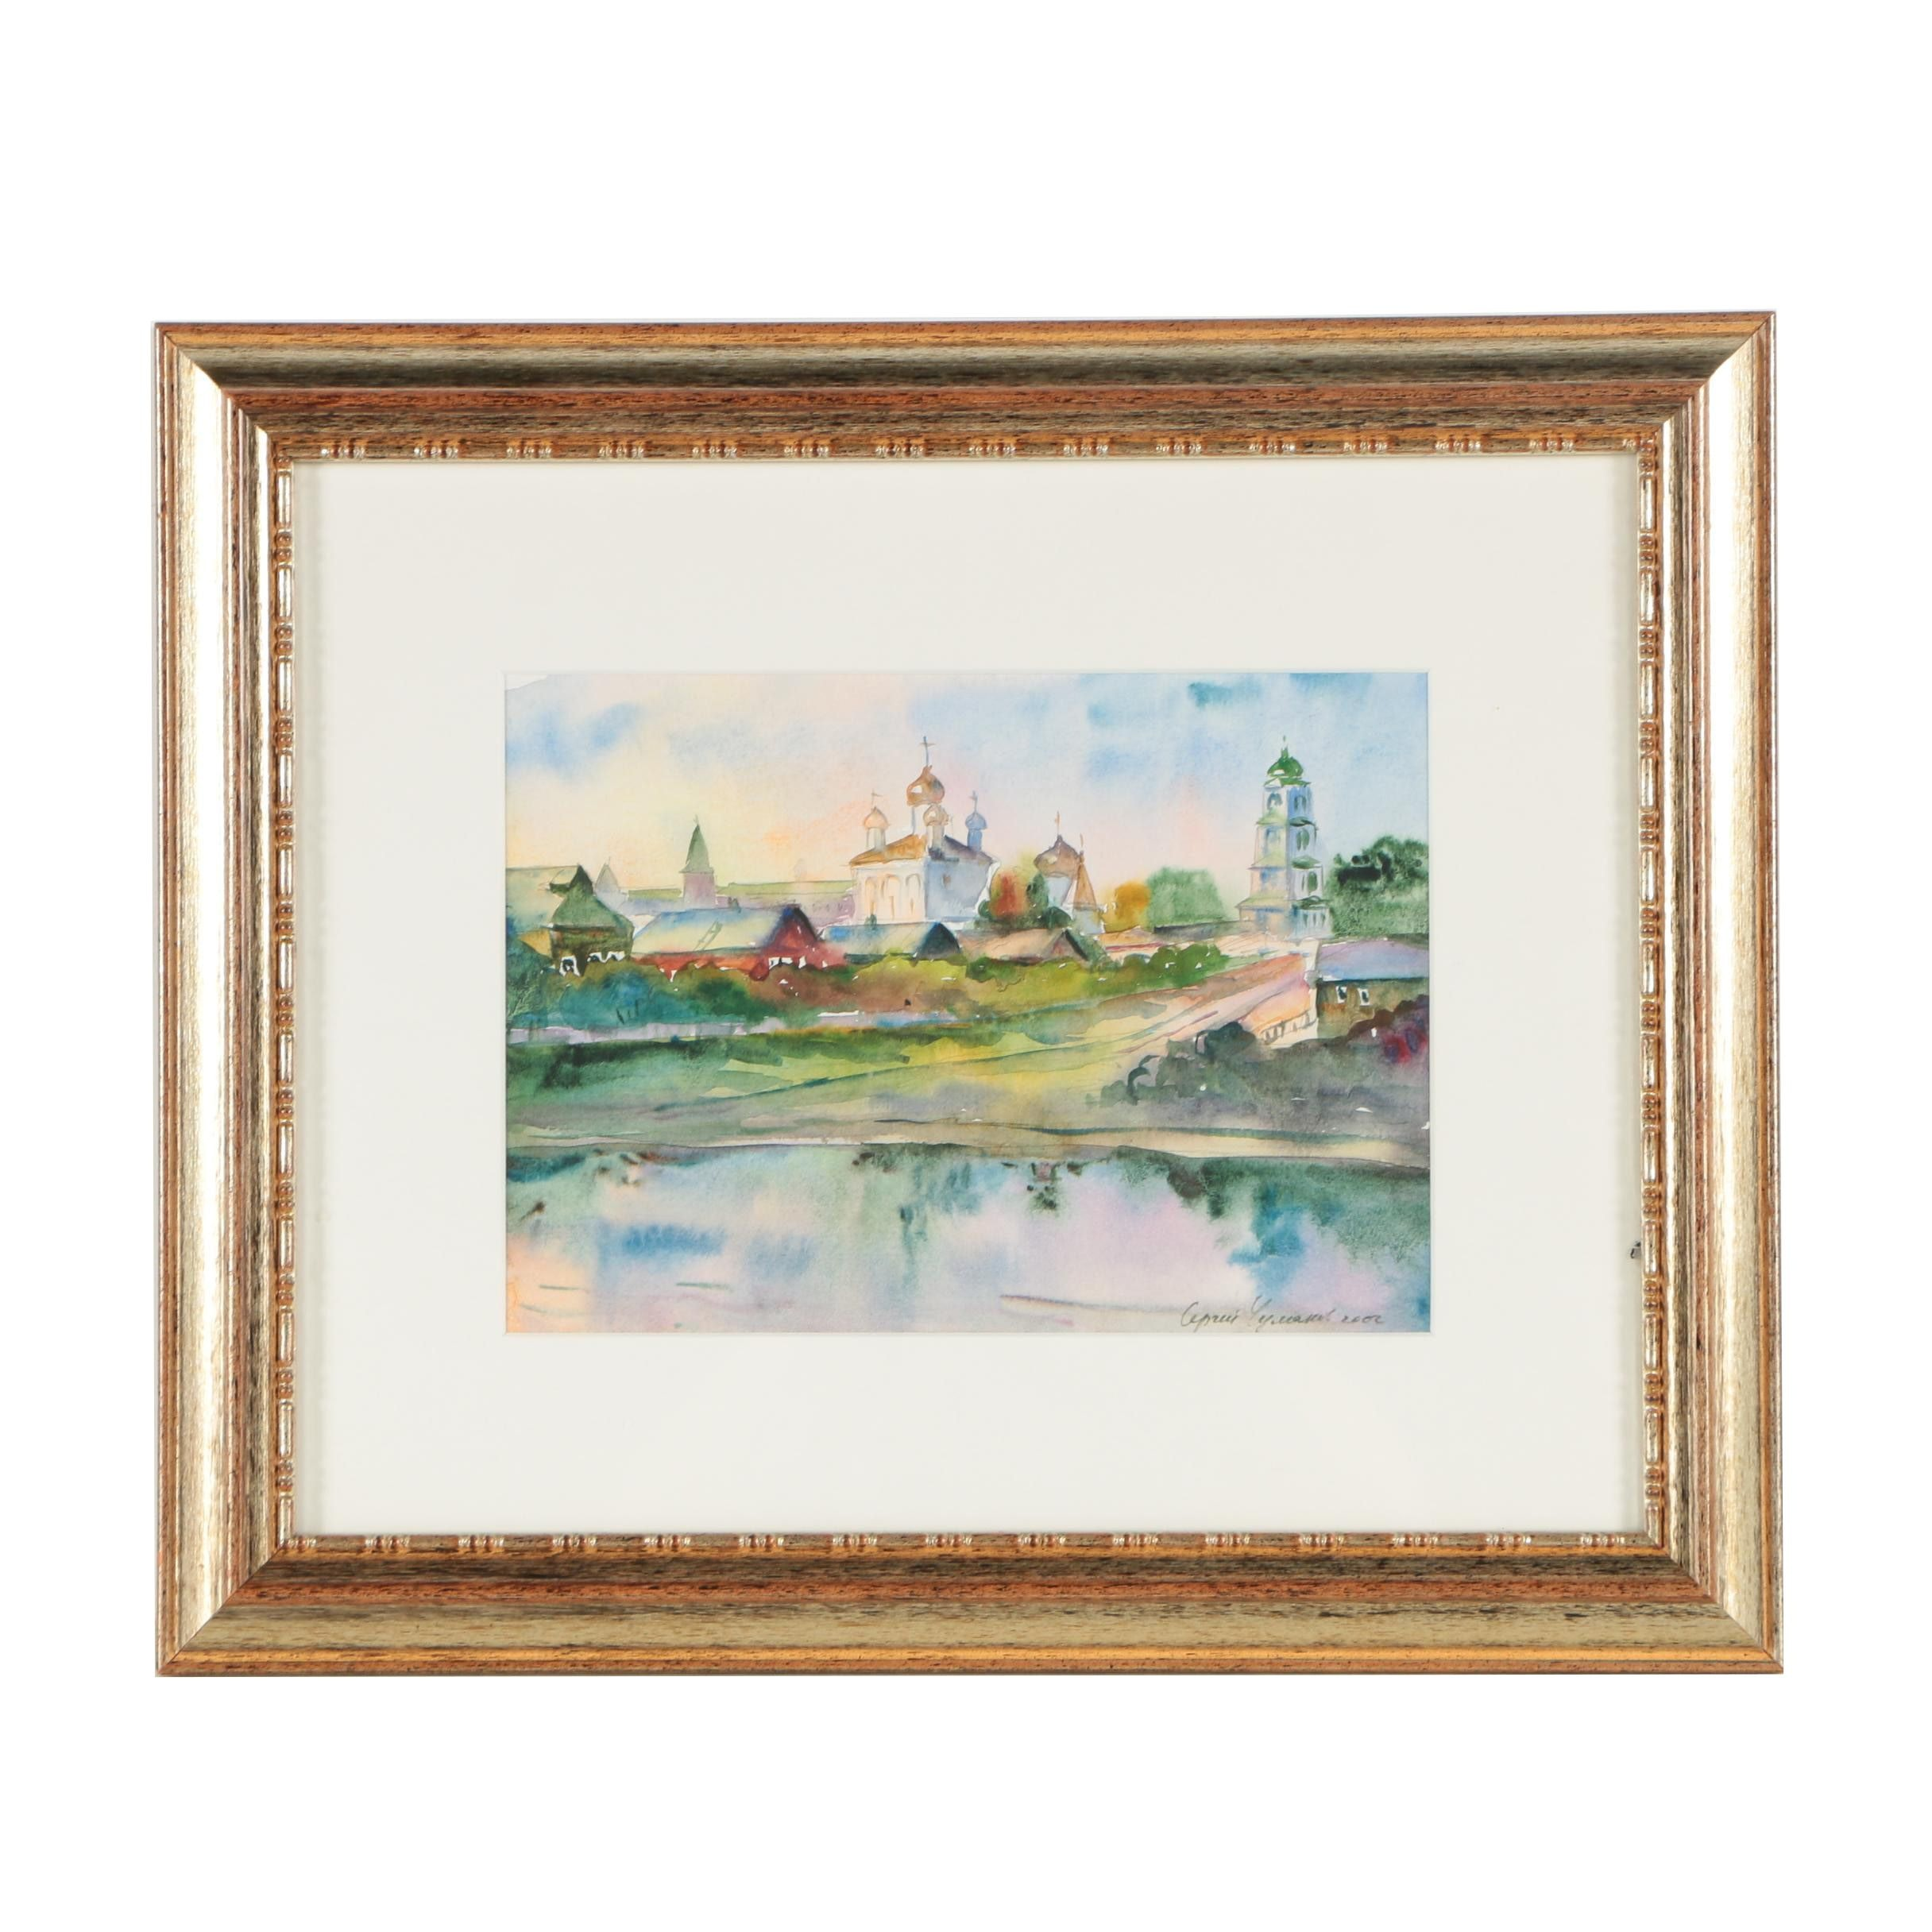 Contemporary Watercolor Painting of Russian Village Landscape